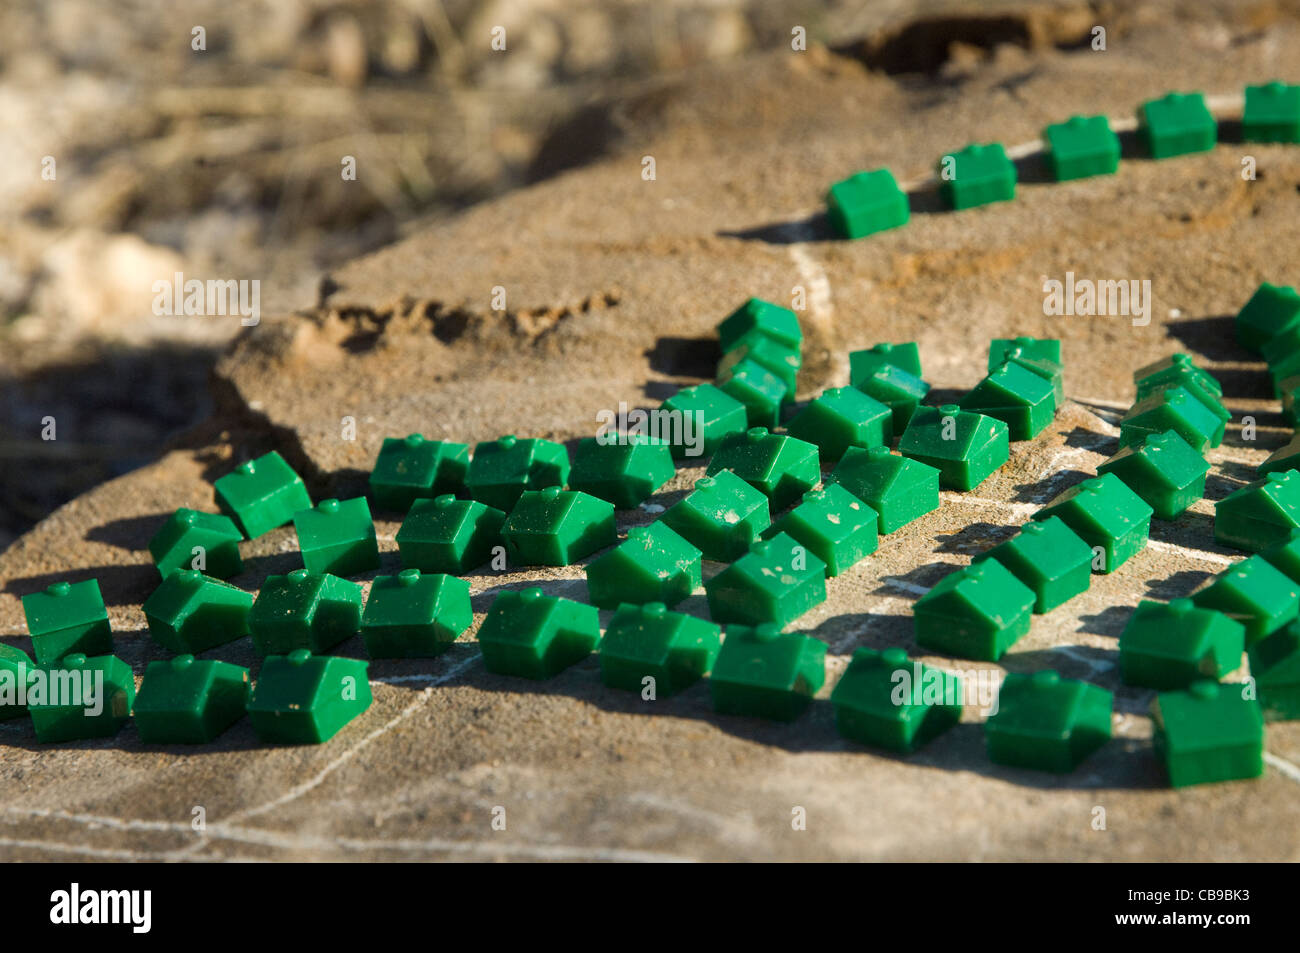 Plastic houses from a board game arranged in 'neighborhoods' in central Texas dirt by a child who's interest is Stock Photo